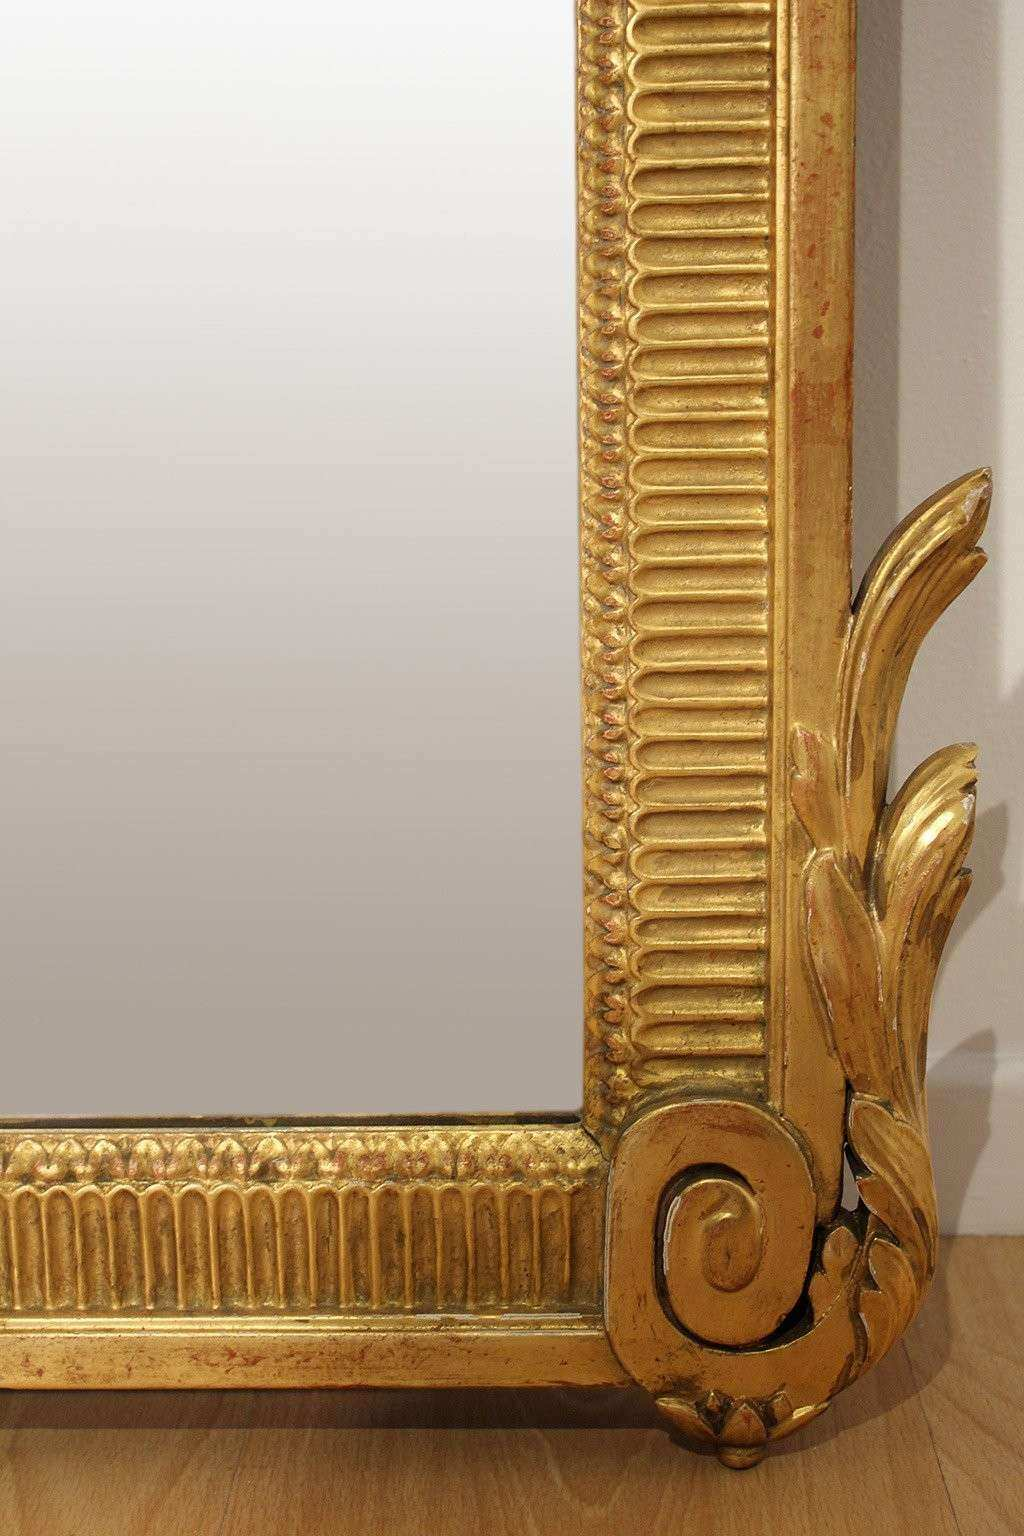 Antique Wall Mirrors Decorative Elegant Antique French Neoclassical Decorative Gold Framed